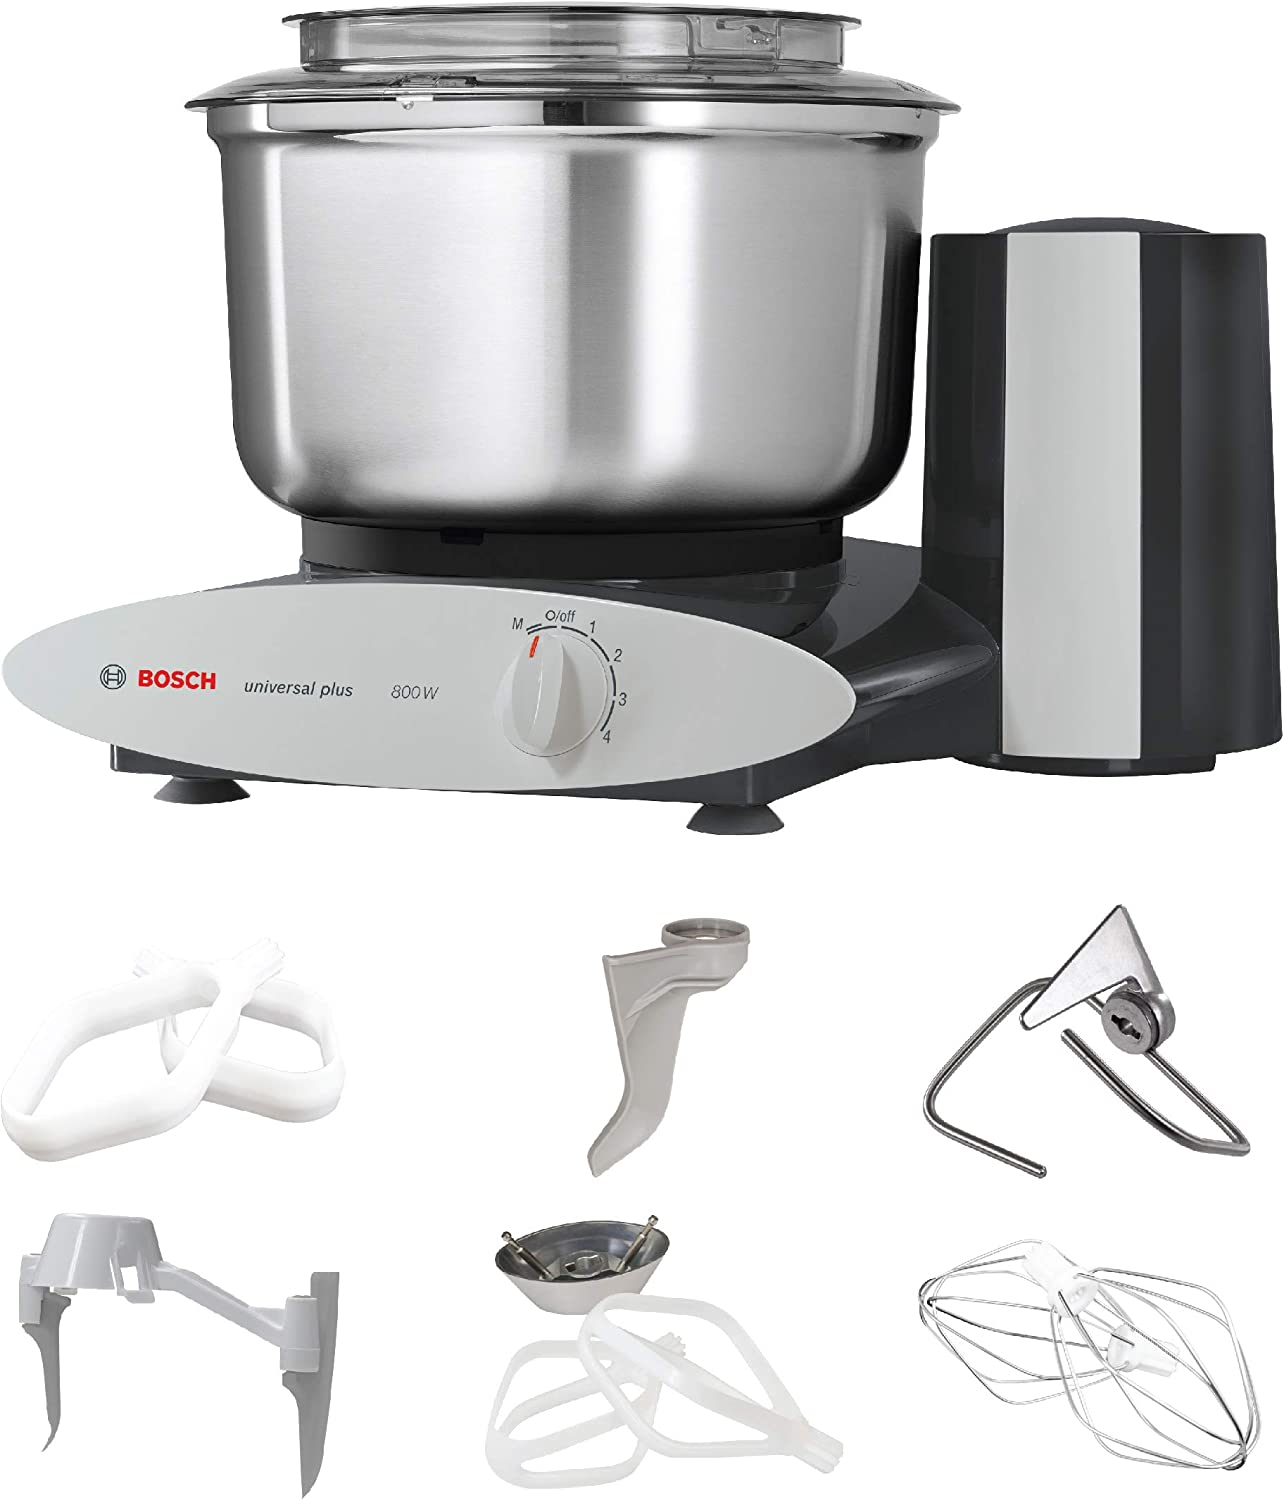 Bosch Universal Plus Stand Mixer - Black - Baker's Package with Additional Baking Attachments and Stainless Steel Bowl